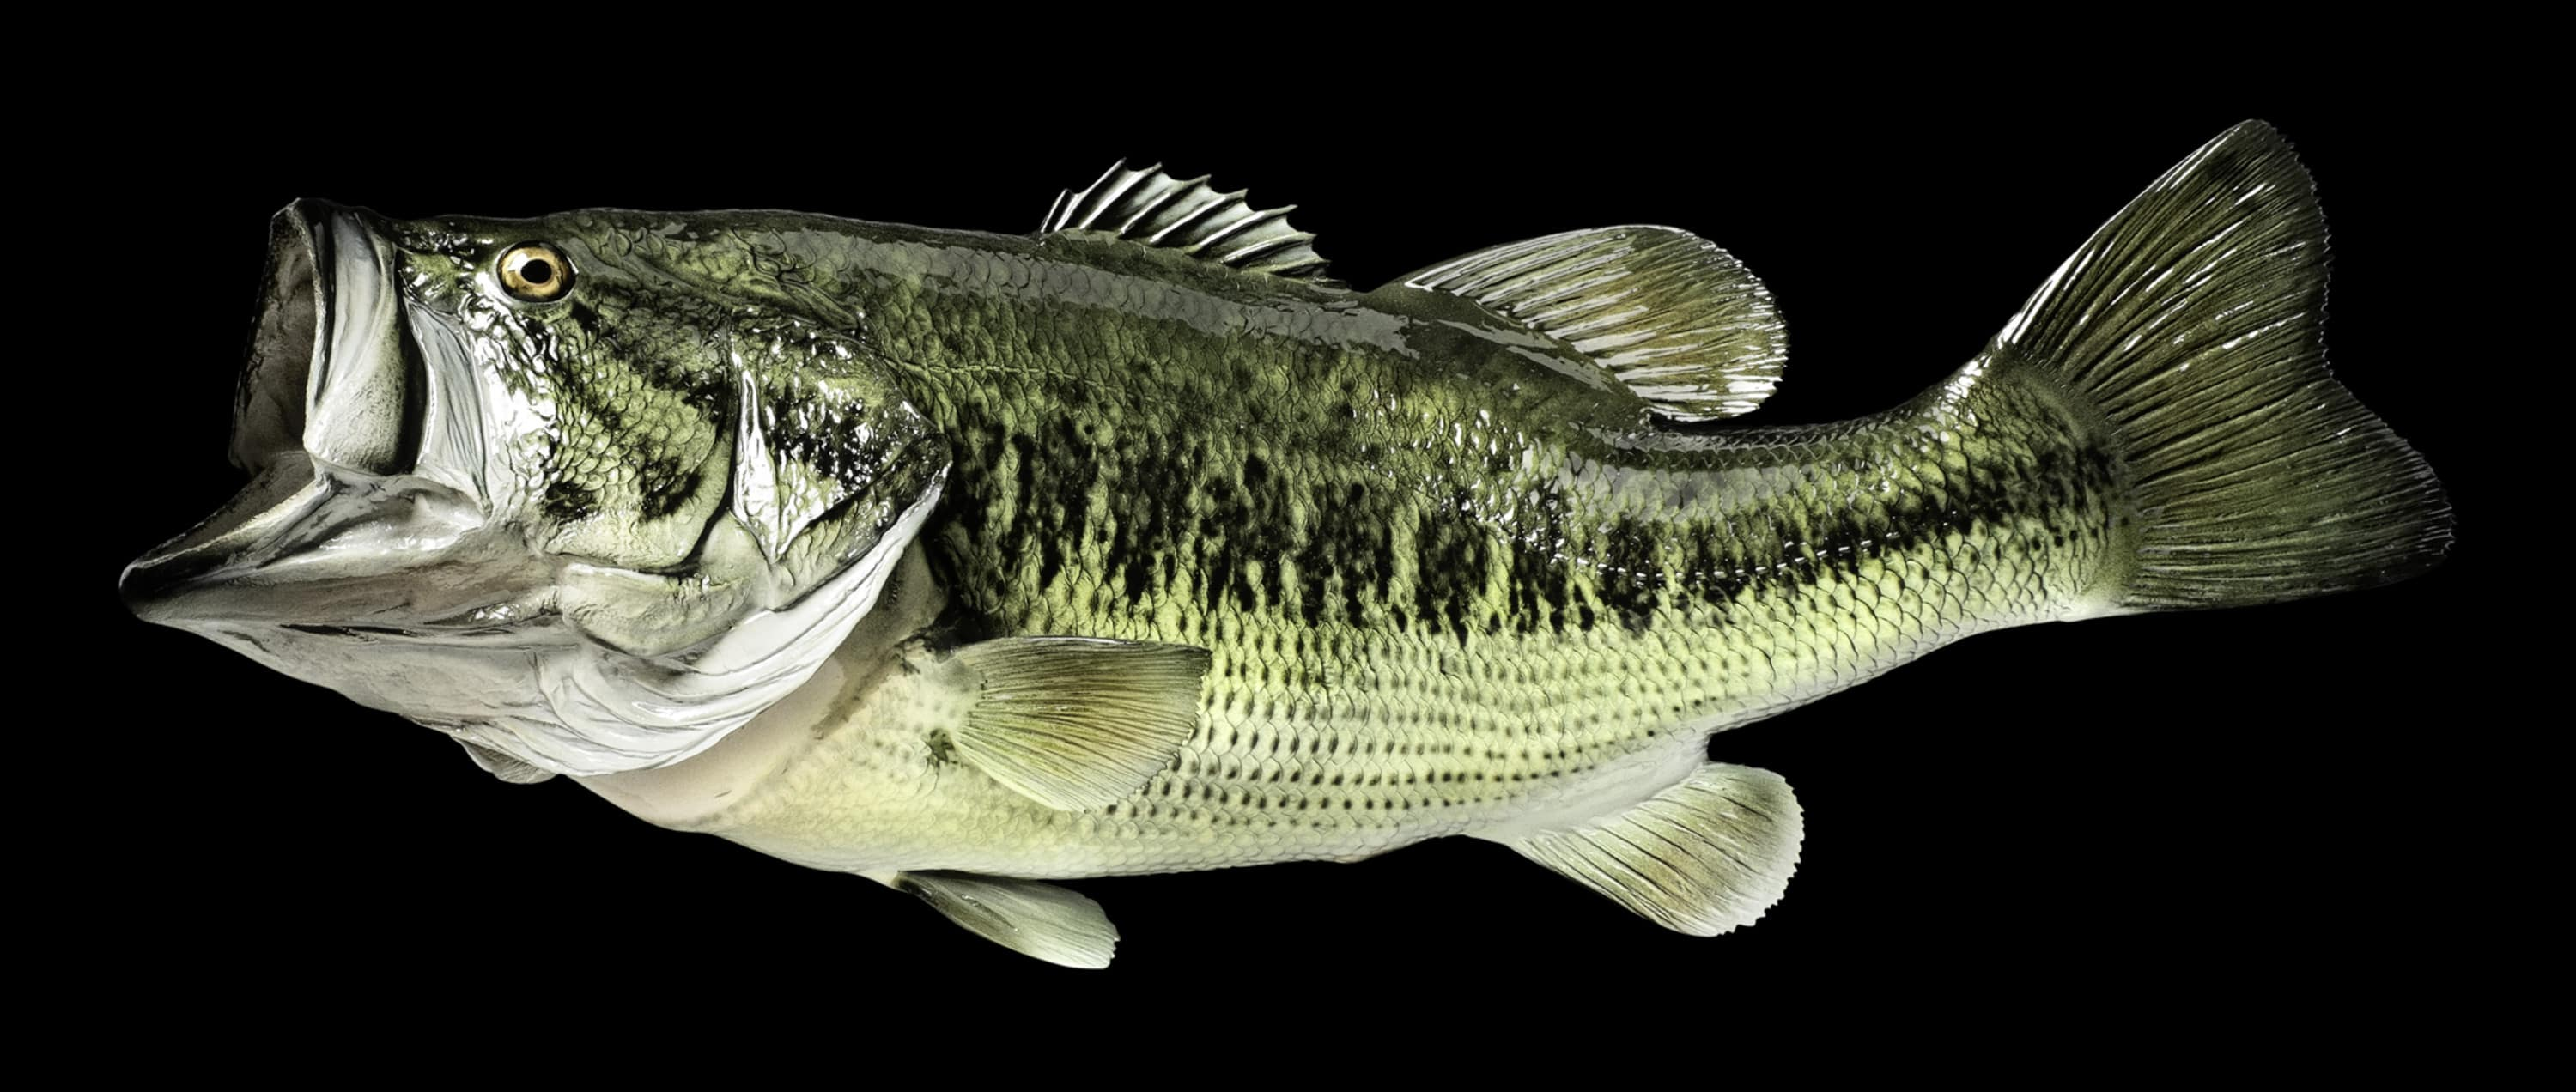 Largemouth Bass Hd Wallpaper For Desktop Images amp Pictures 3000x1272